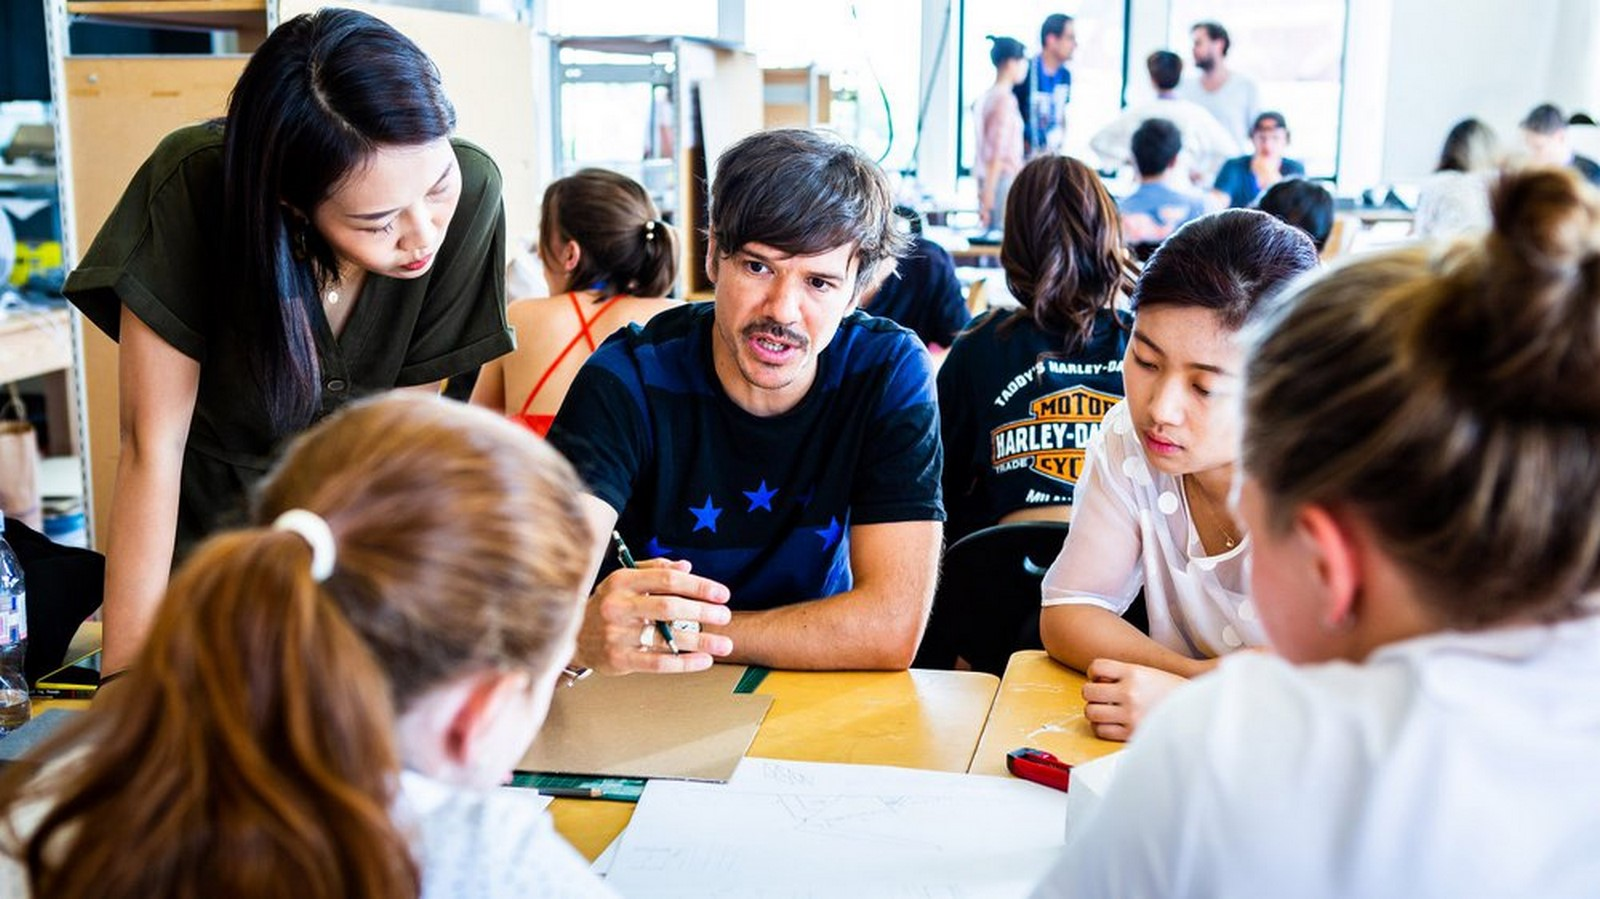 Why should one take up architecture summer school? - Sheet4